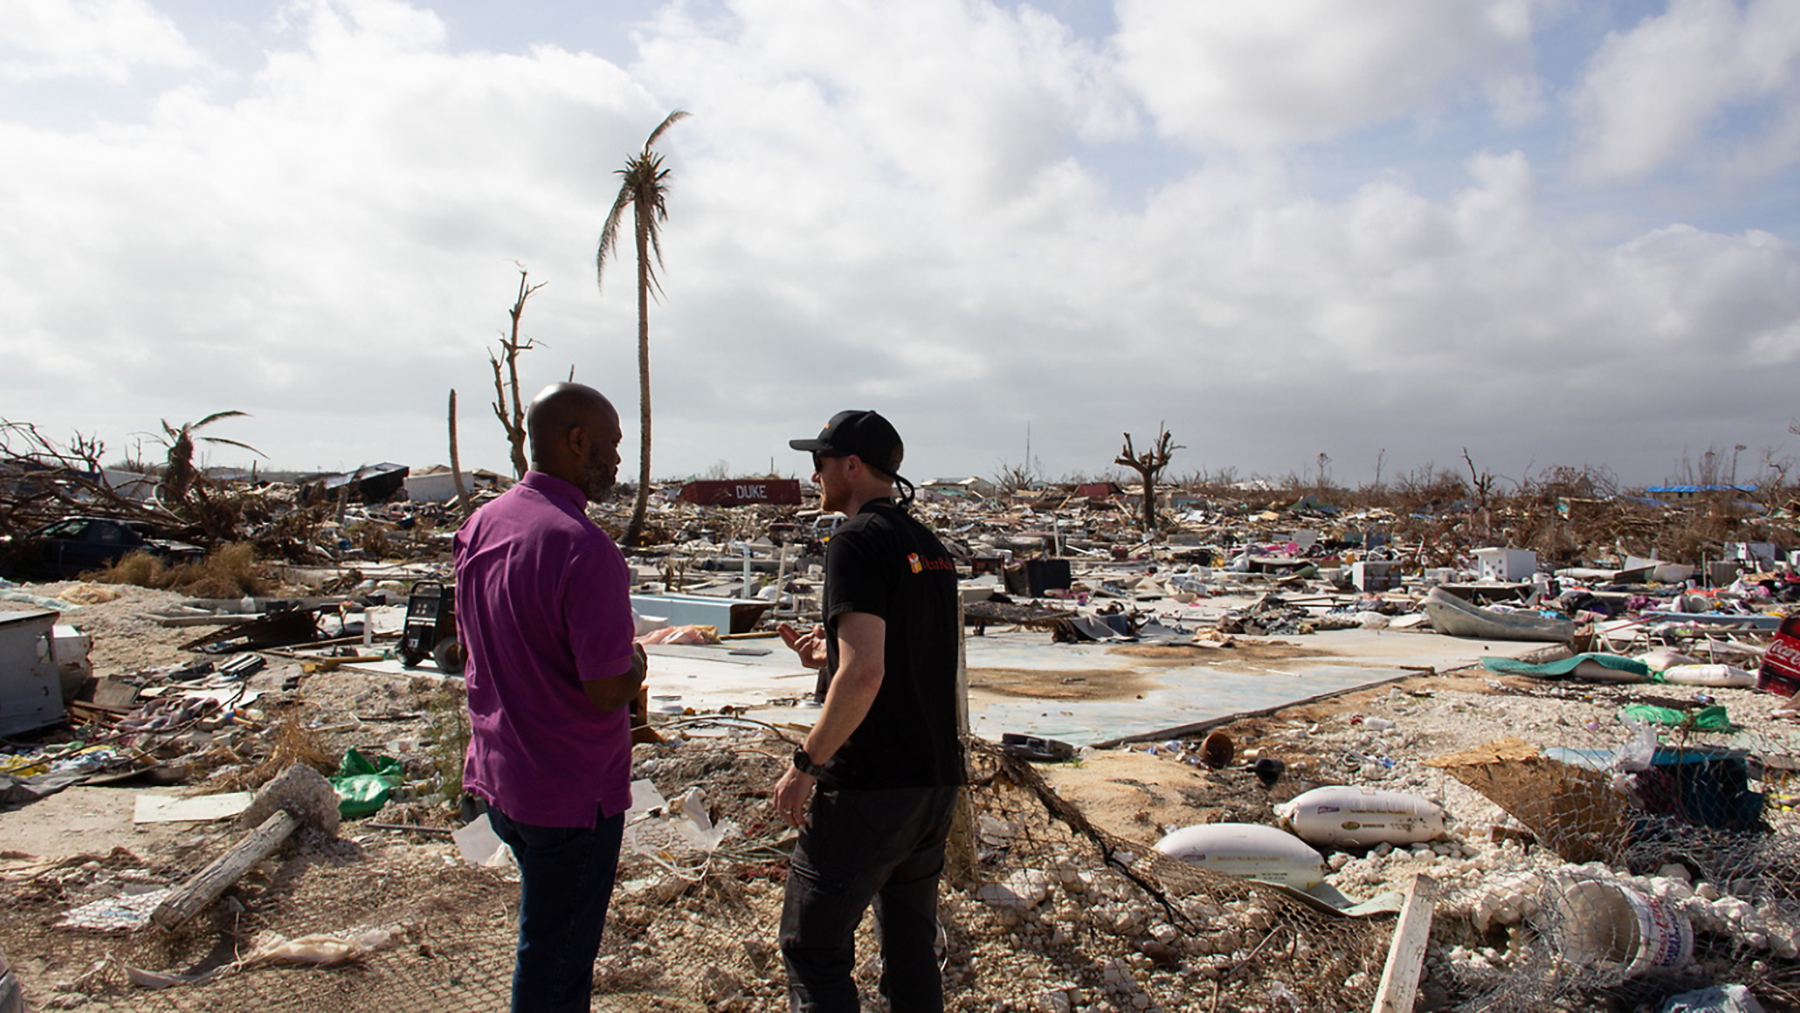 Direct Relief's Gordon Willcock meets with a doctor in the Bahamas after Hurricane Dorian hit the islands as a Category 5 hurricane in August.